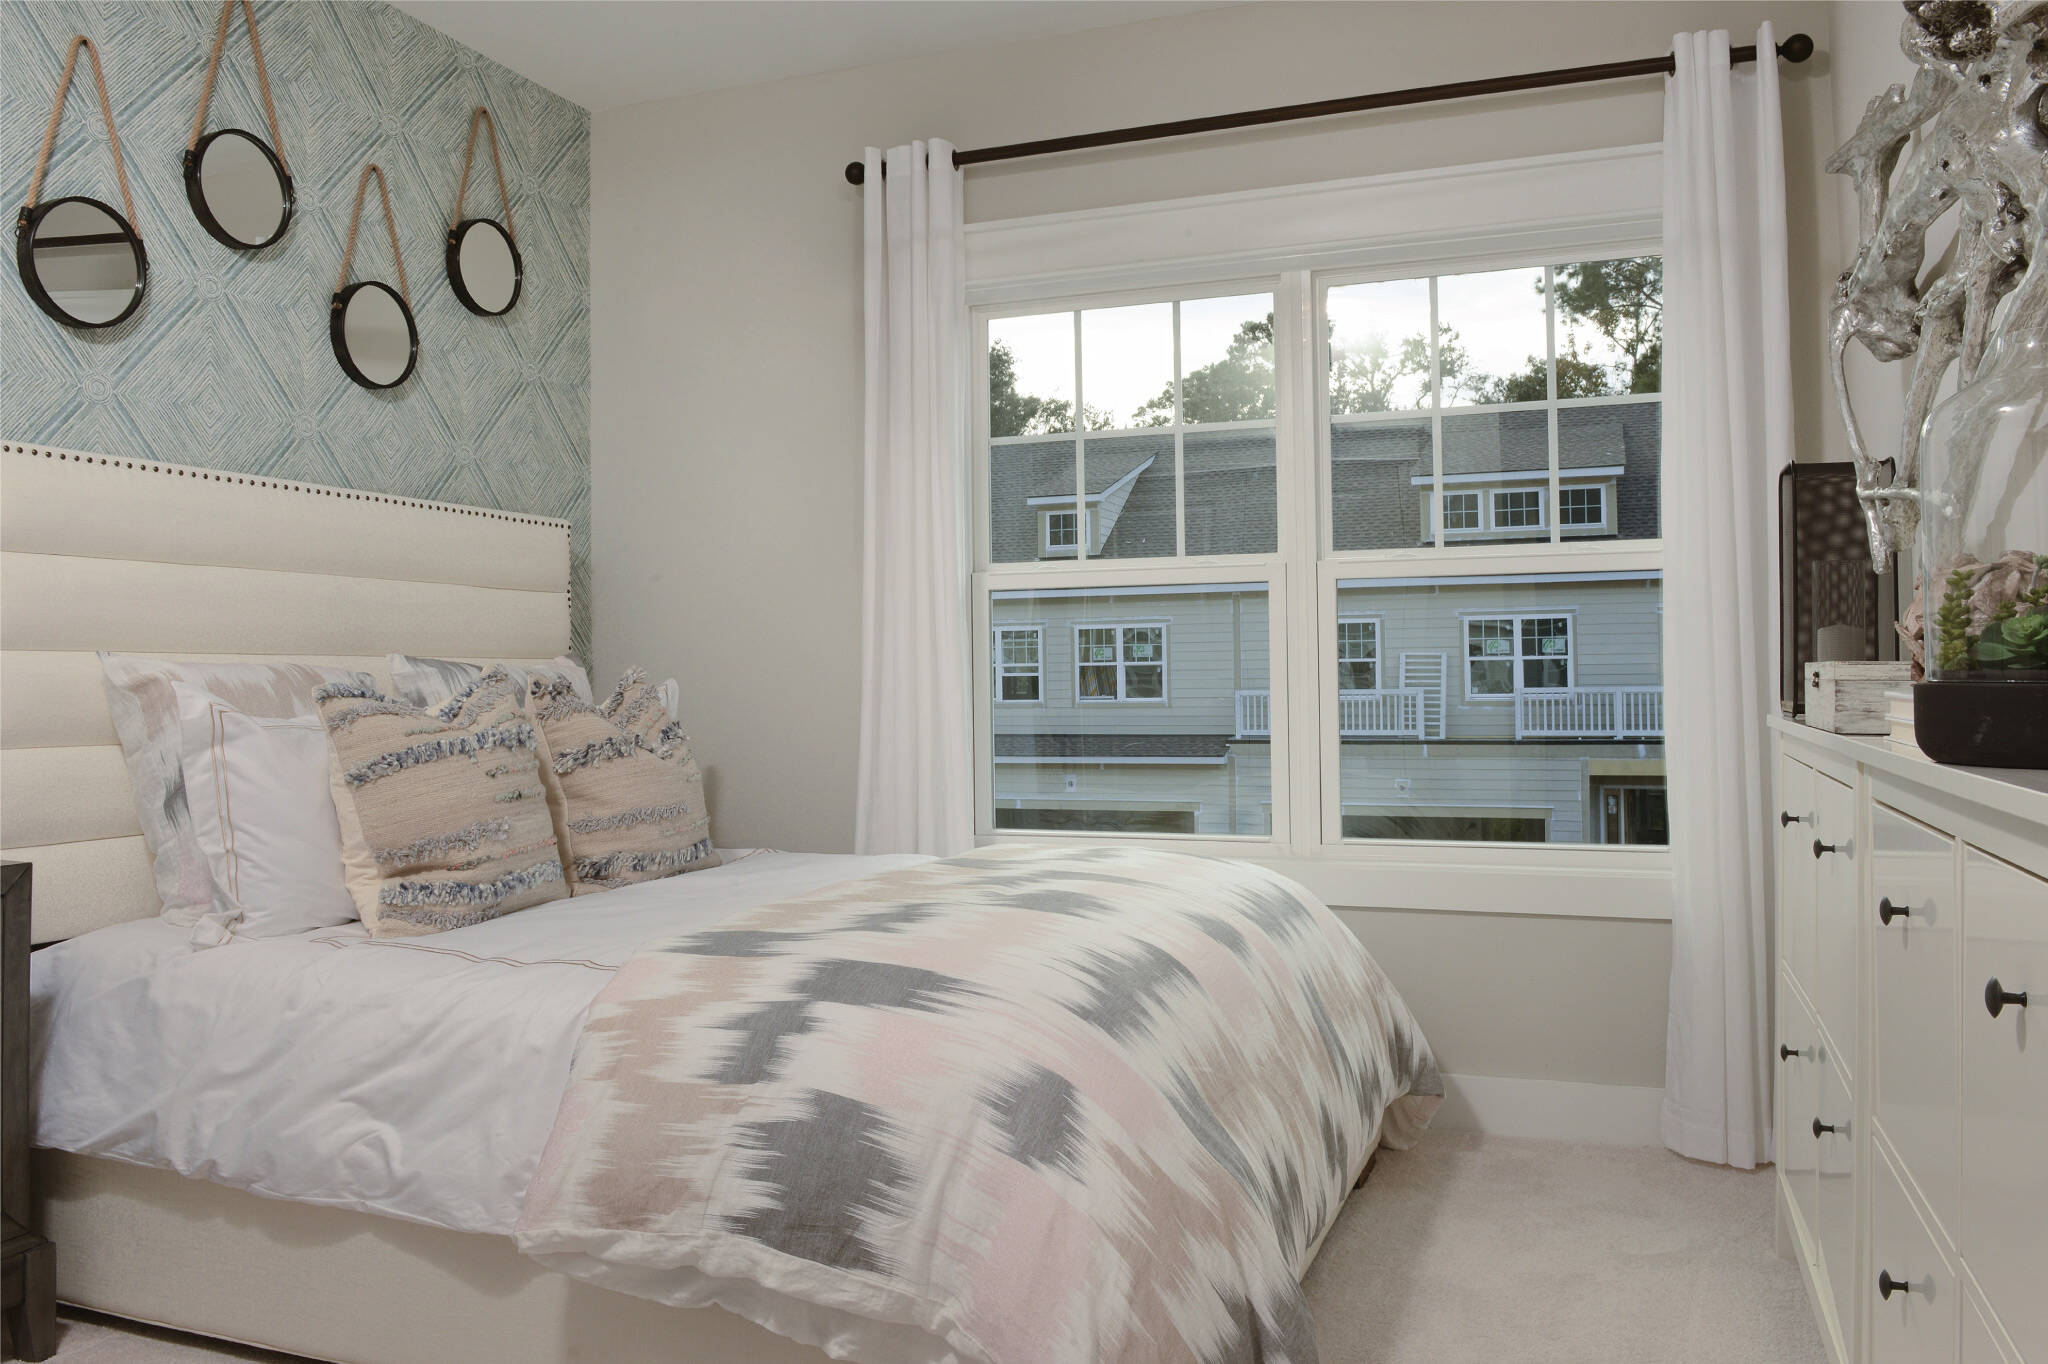 bedroom 3 in surfside at magnolia place new townhomes in hilton head island south carolina